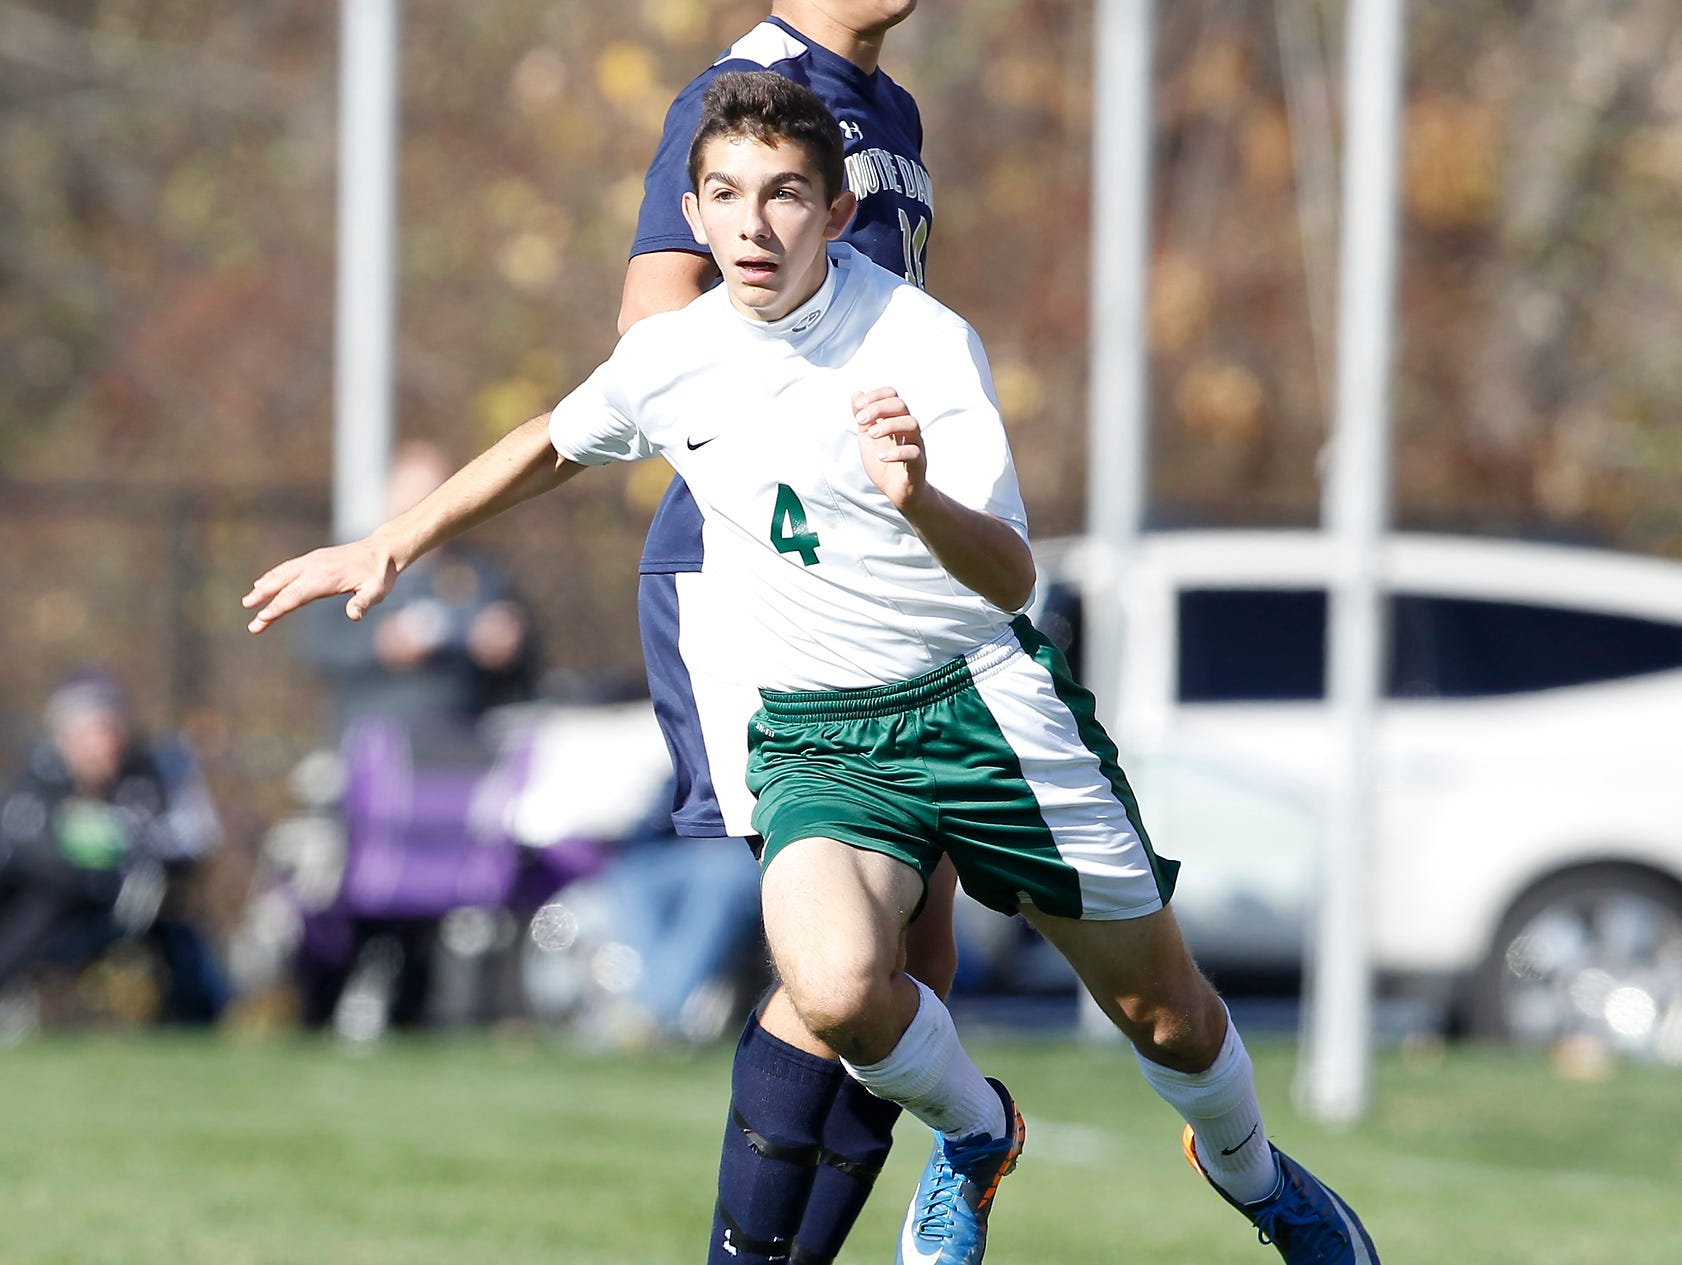 Solomon Schechter's Eitan Abecassis (4) works around a defender during their 9-1 loss to Notre Dame in the NYSPHSAA boys class C soccer final at Middletown High School on Sunday, Nov. 15, 2015.